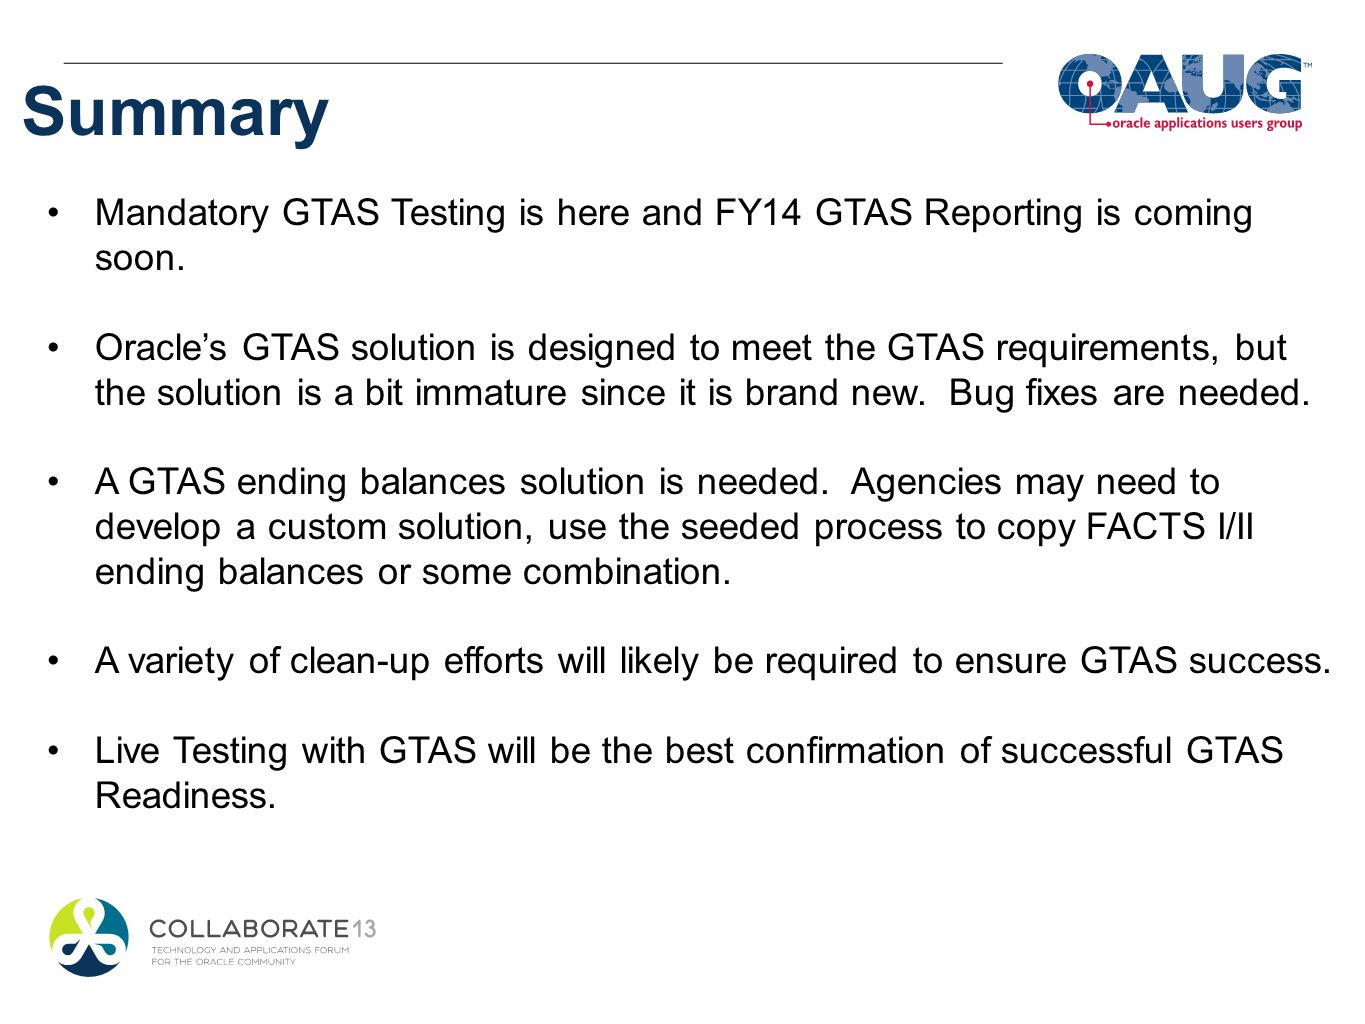 Summary Mandatory GTAS Testing is here and FY14 GTAS Reporting is coming soon.